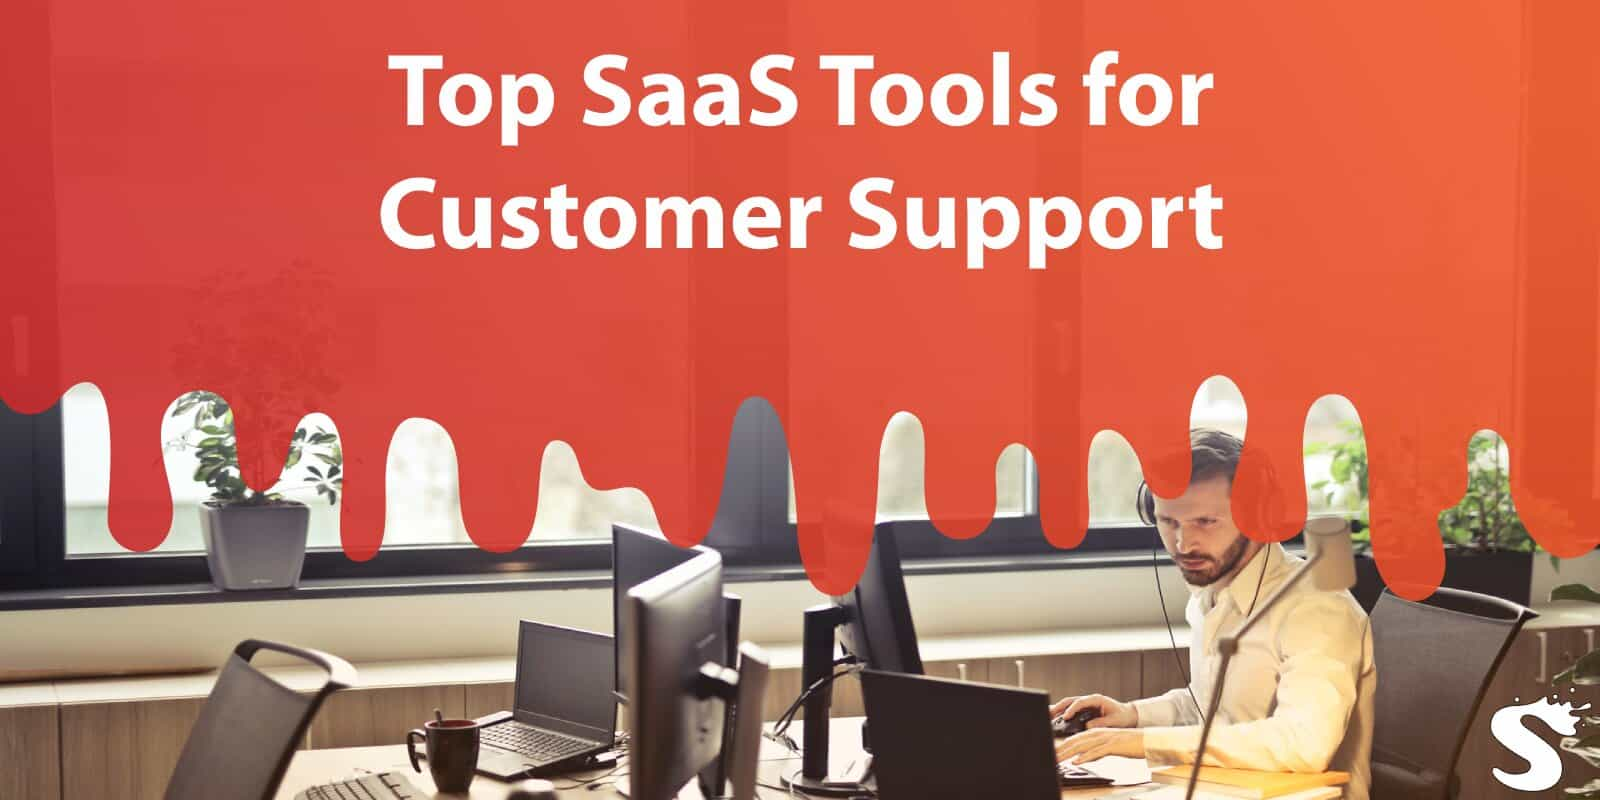 Top Saas Tools for Customer Support